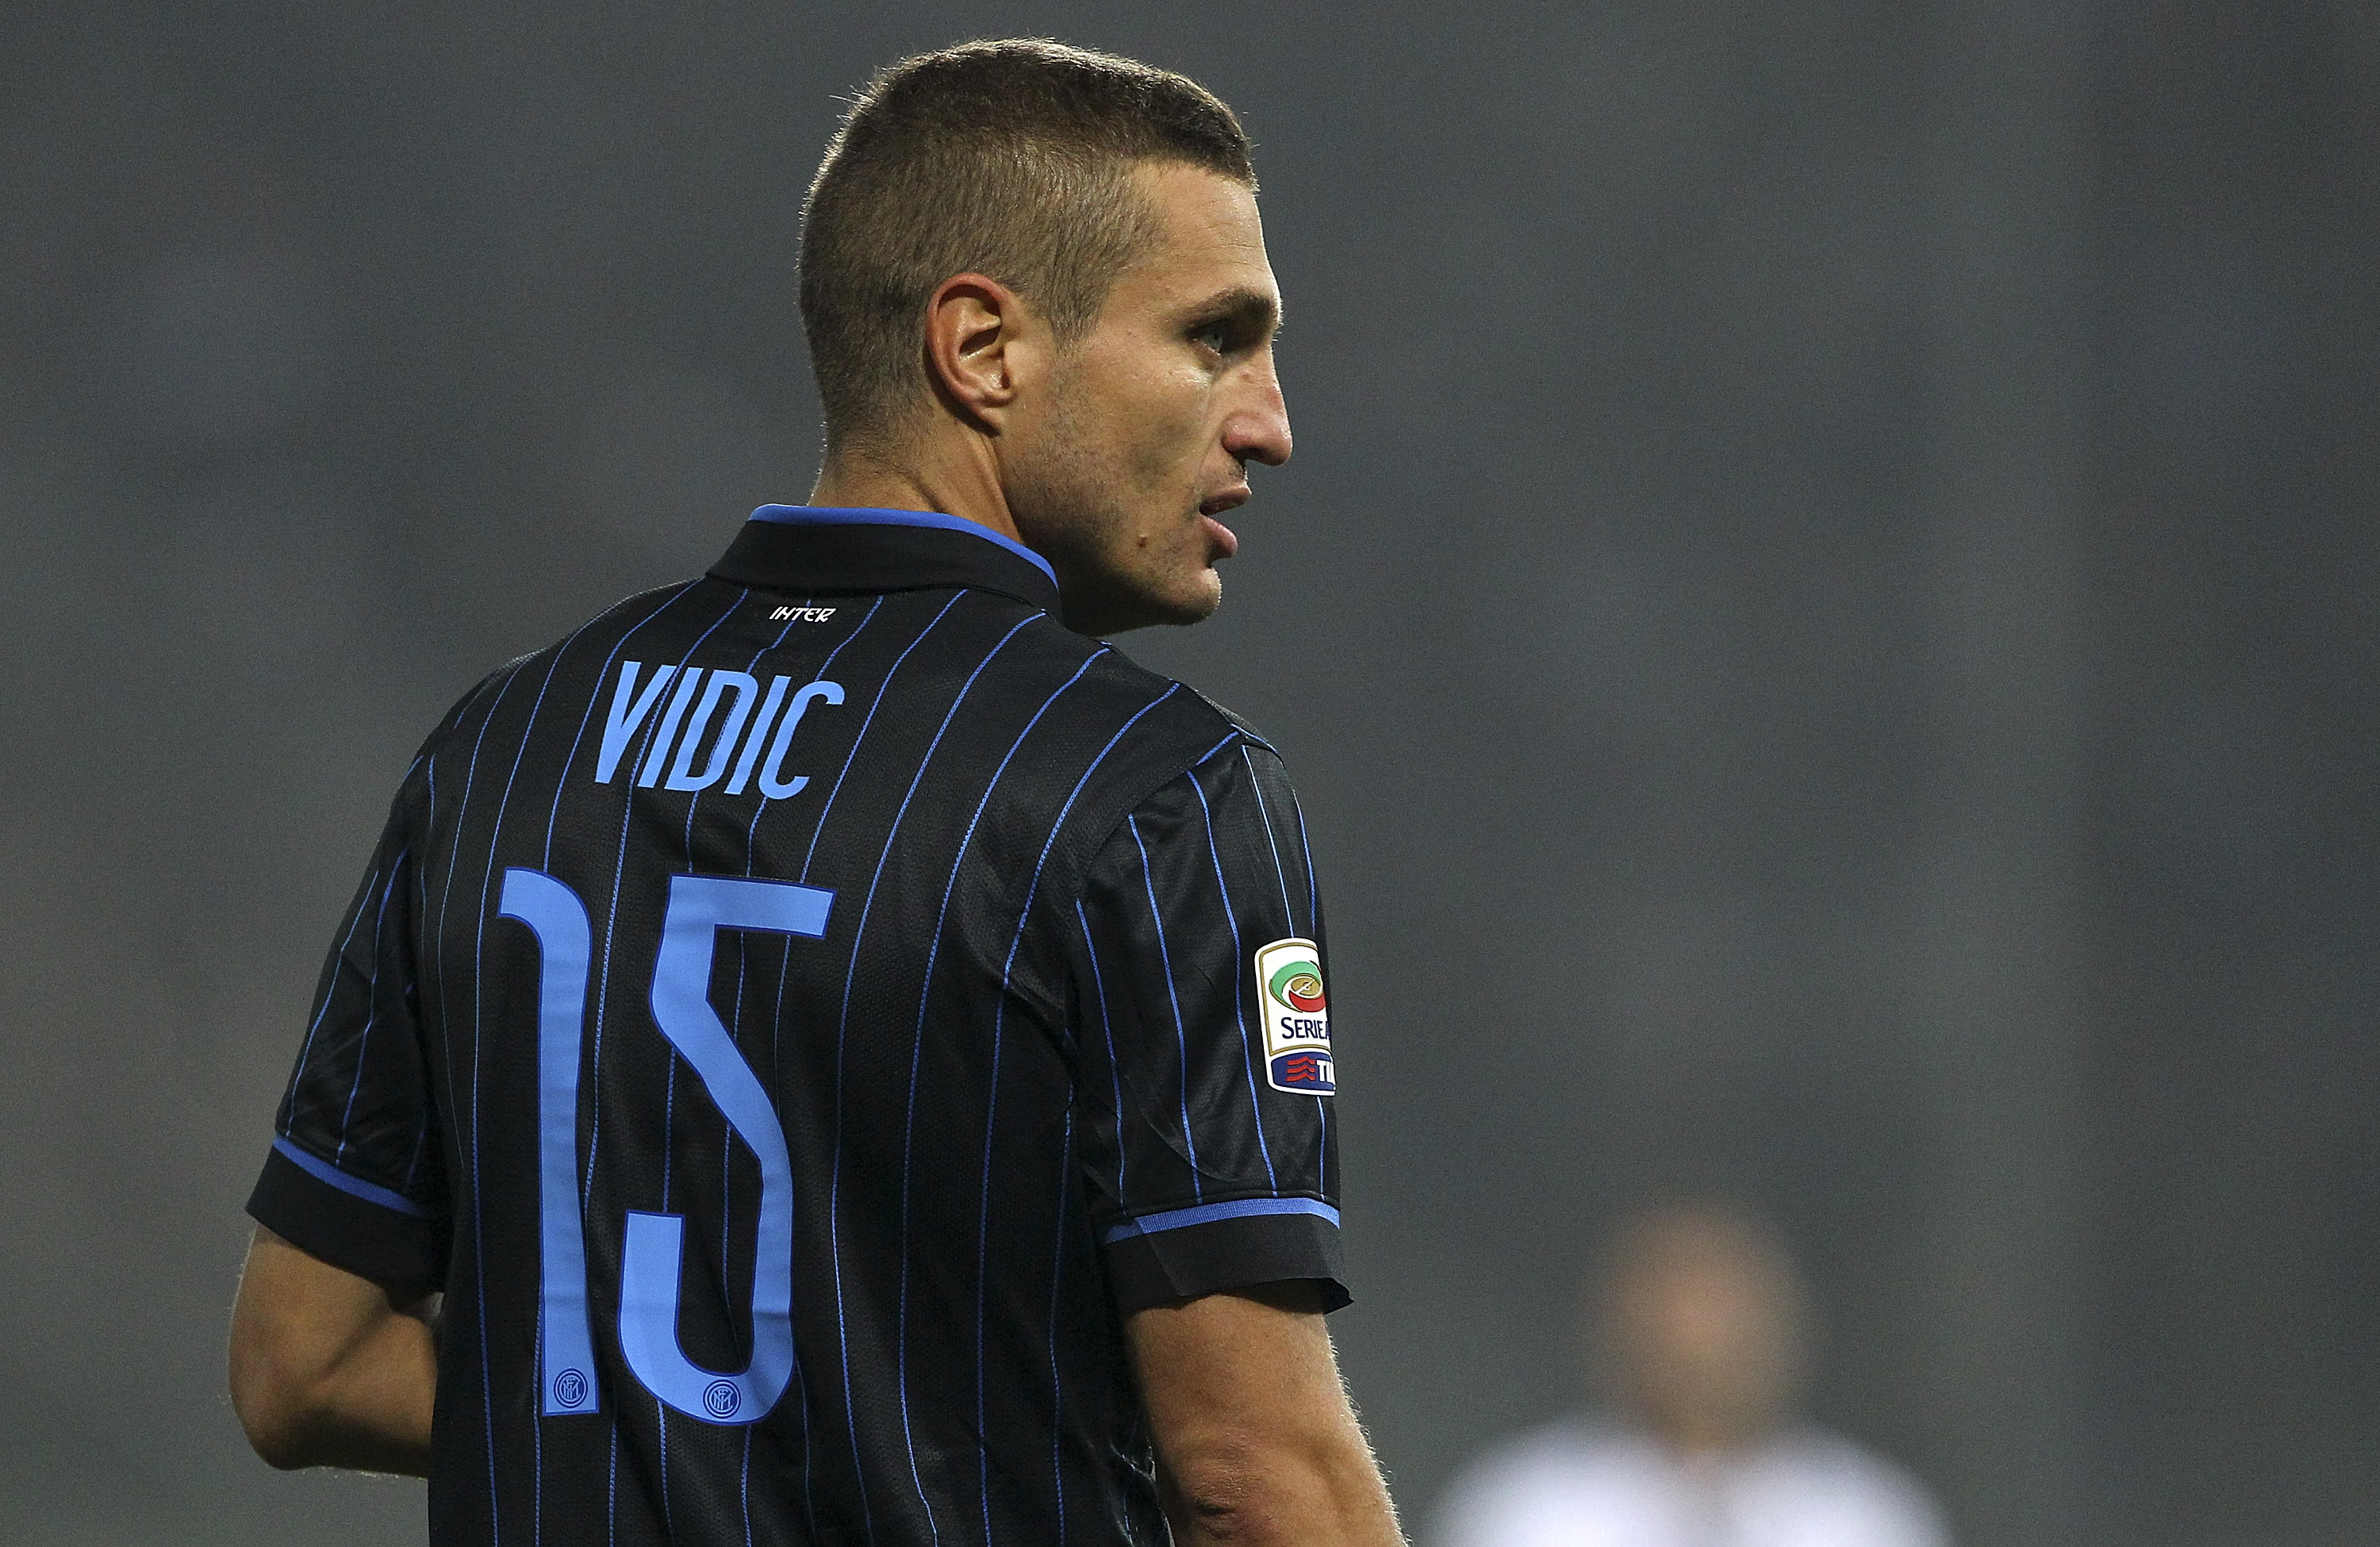 Vidic finished his career at Inter